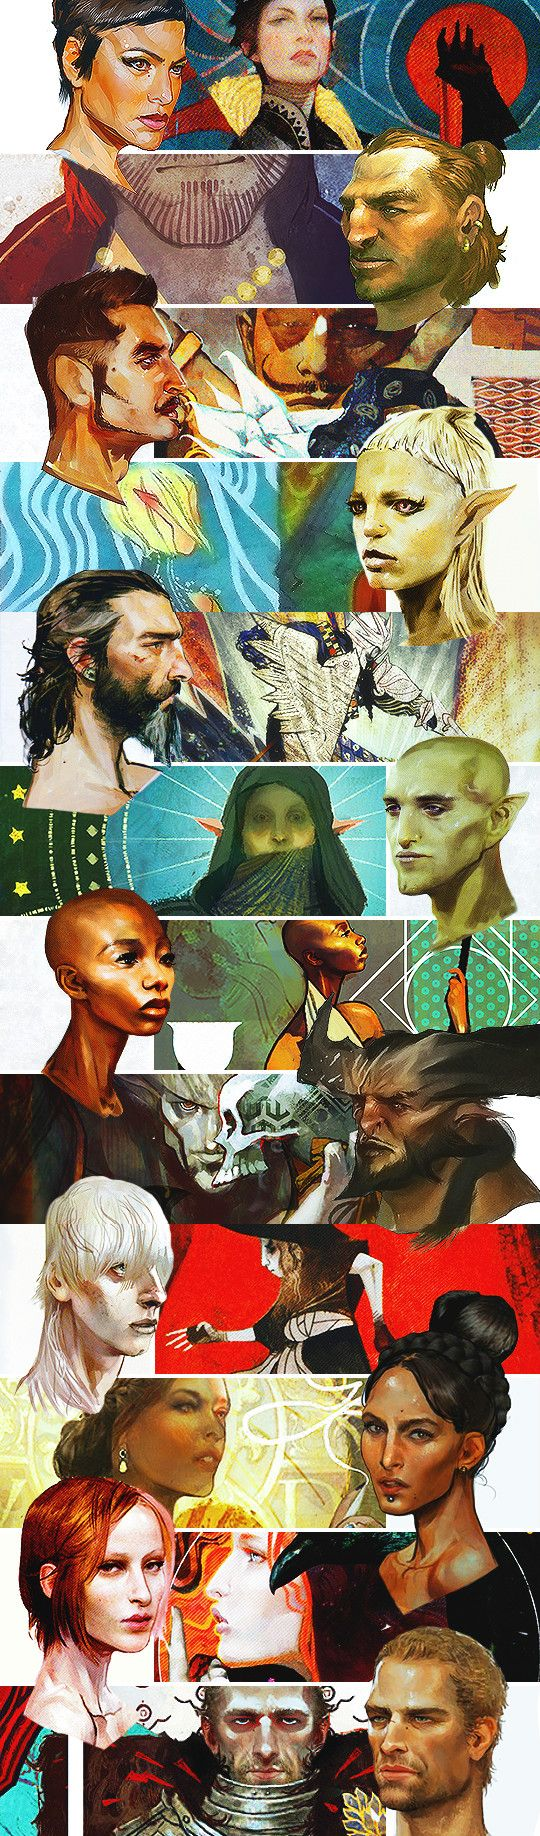 Dragon Age: Inquisition concept art/tarot card collage, by theprettyhelpless